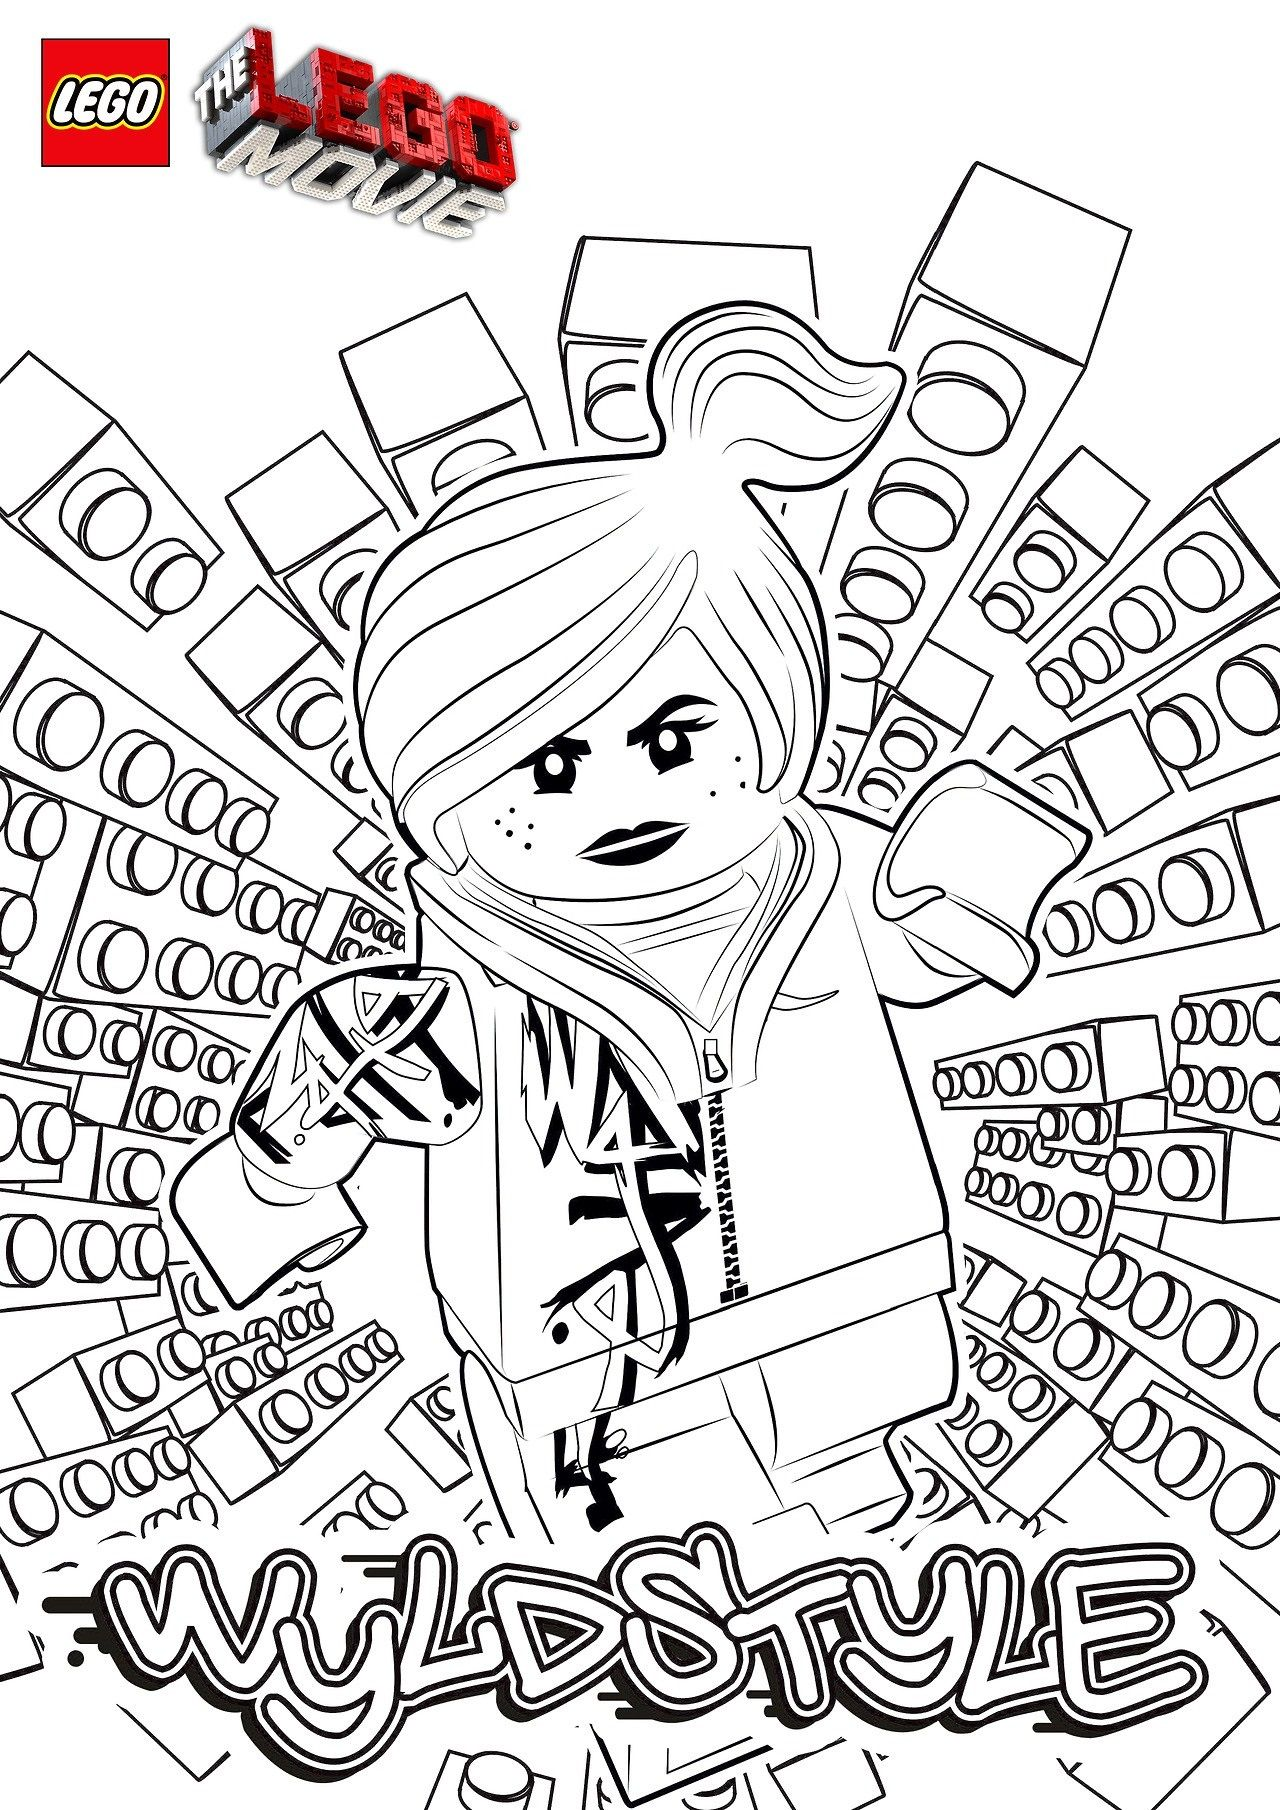 The Lego Movie Wyldstyle Coloring Page Legos Pinterest